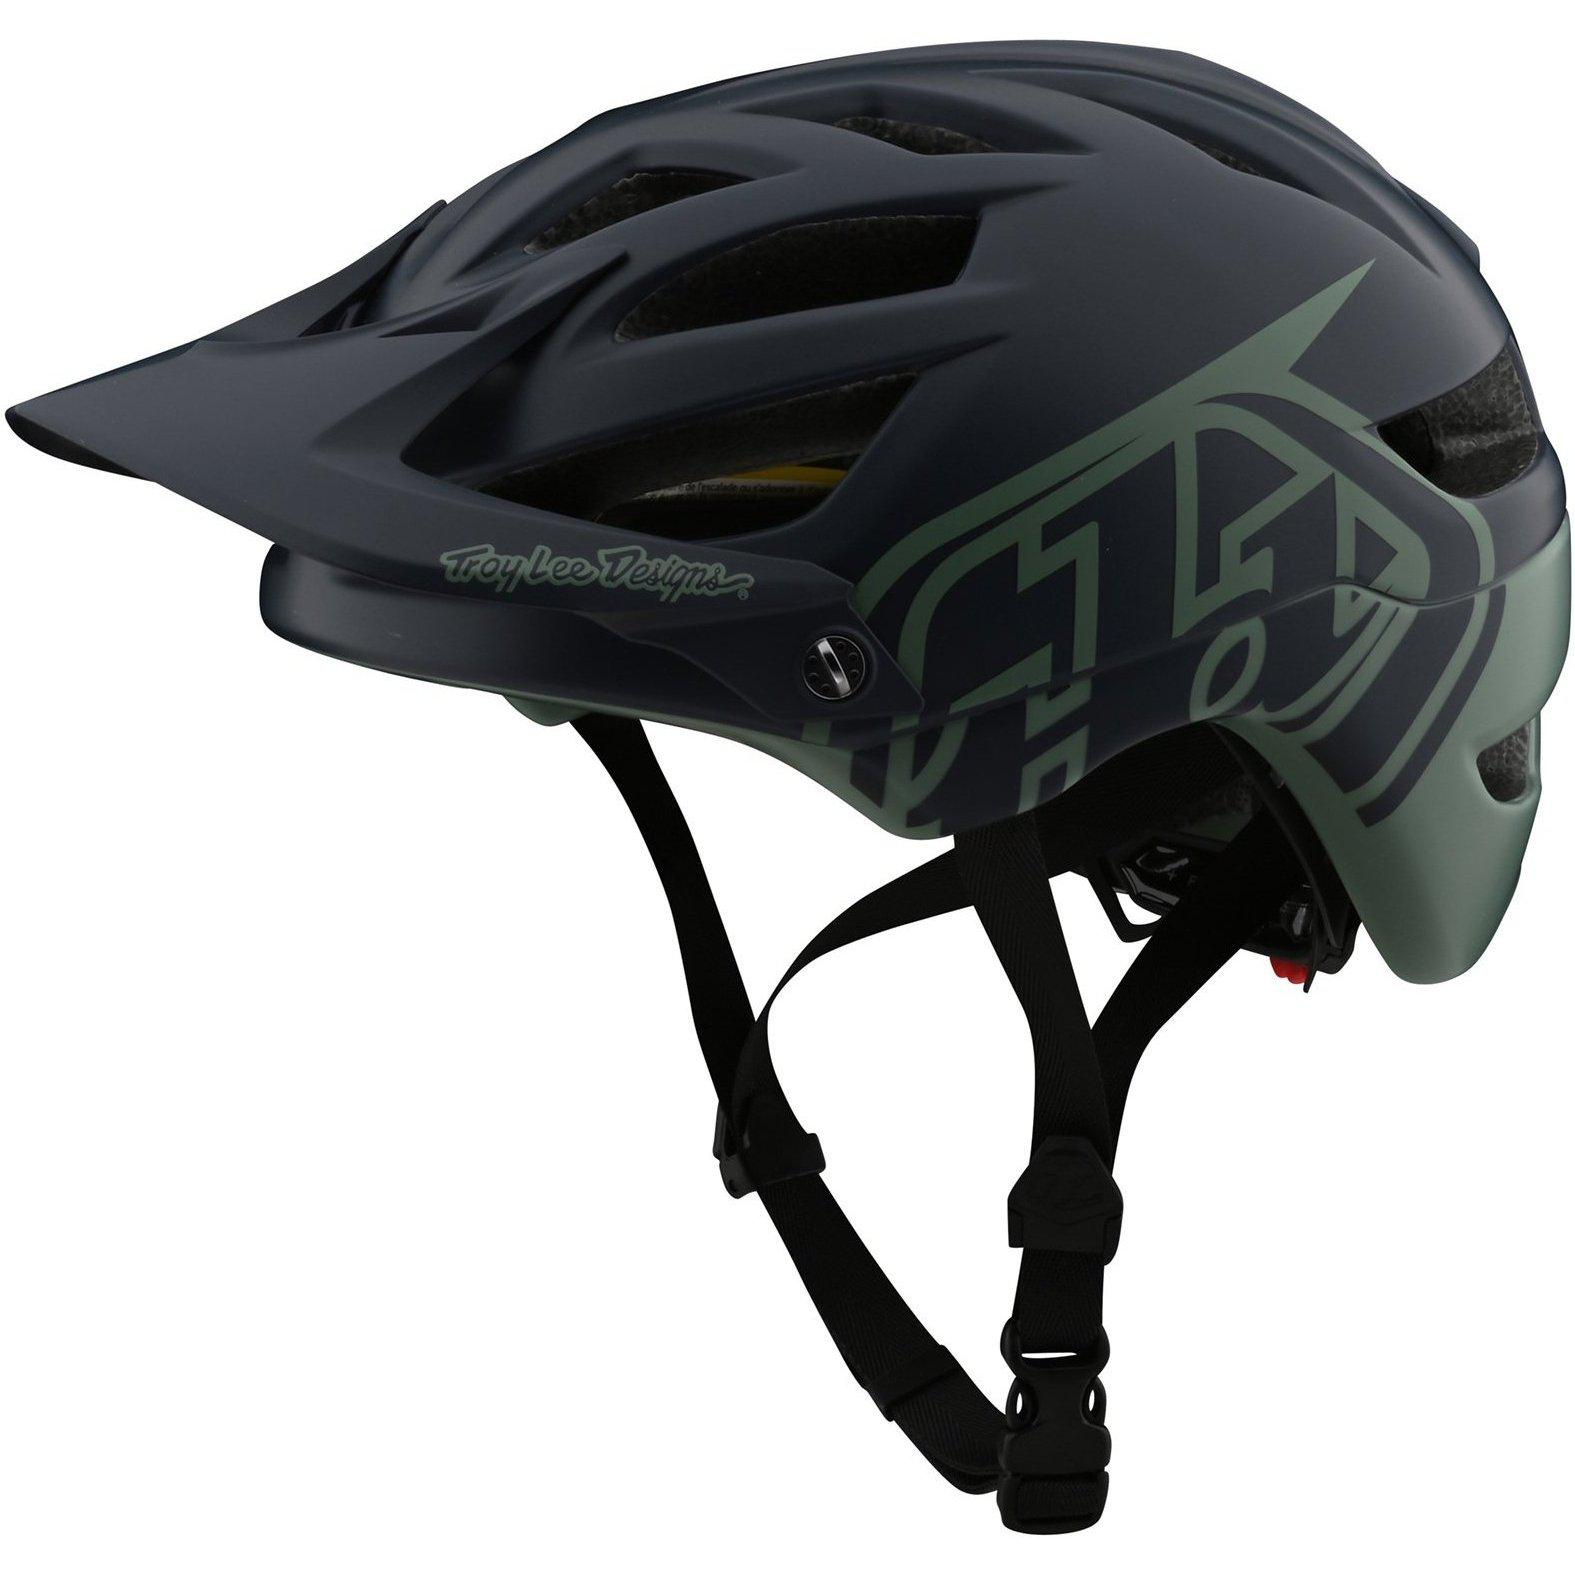 Troy Lee Designs-Troy Lee Designs A1 Classic MIPS Helmet-Classic - Navy/Seafoam-M/L-TLD190111173-saddleback-elite-performance-cycling